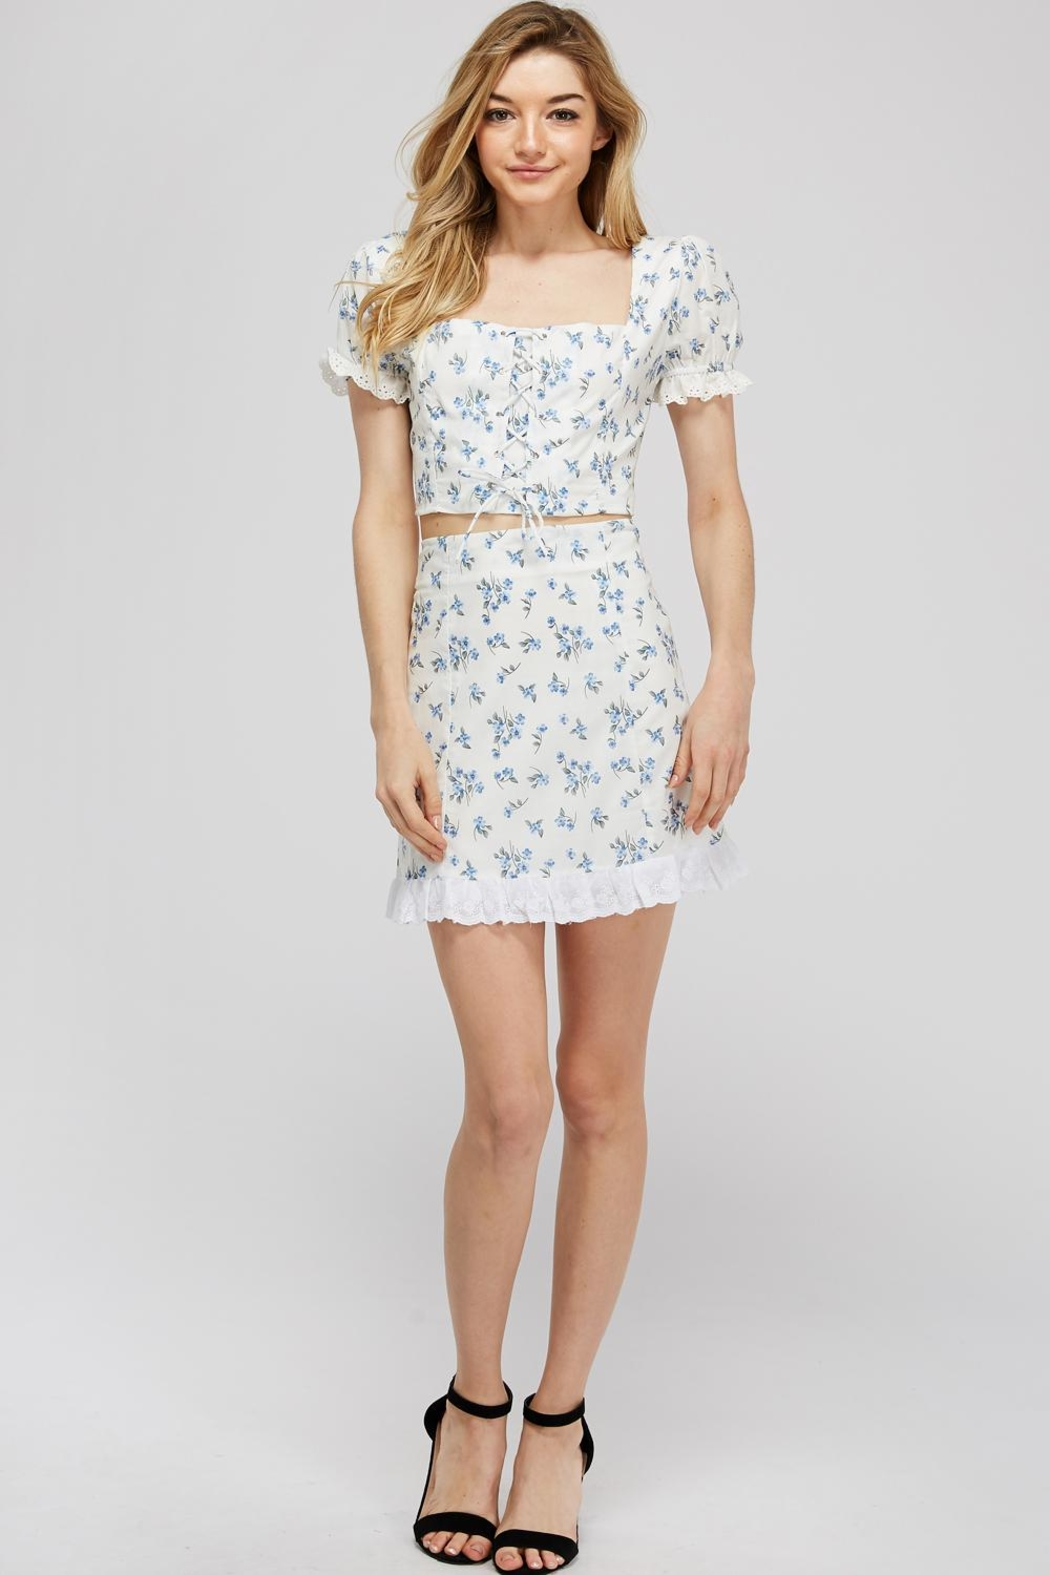 Emory Park Lace-Up Floral Top - Front Full Image